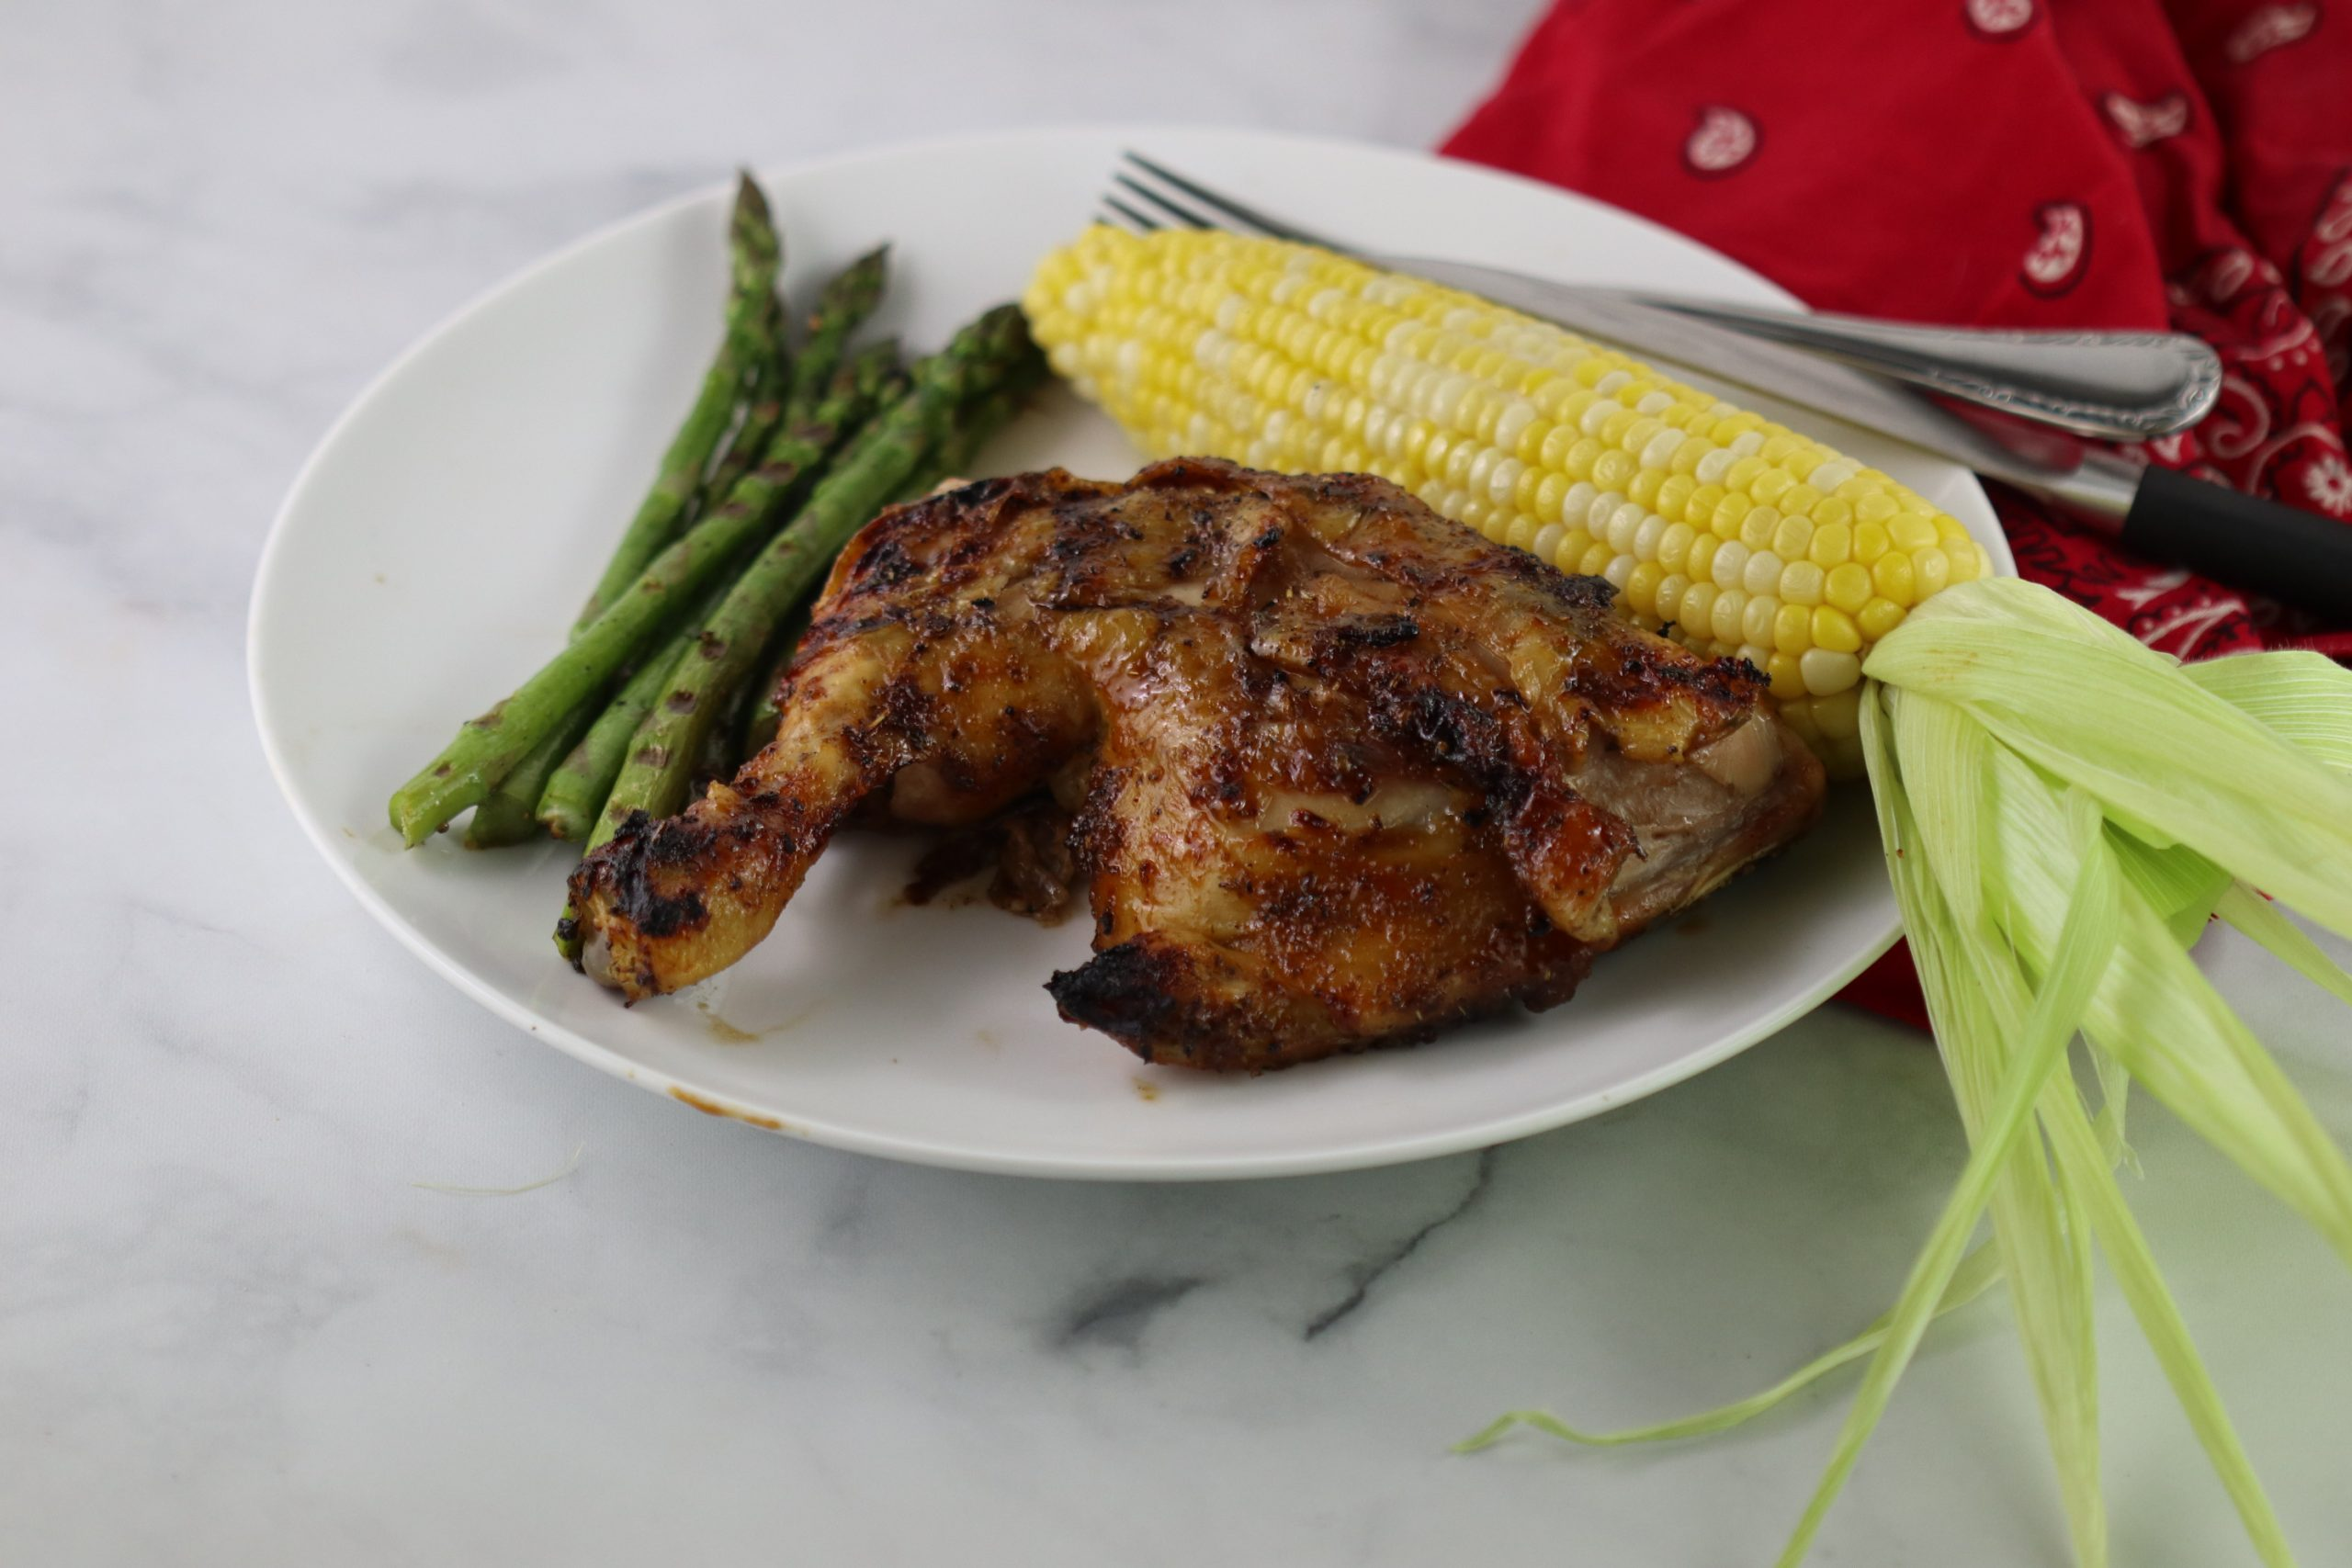 BBQ chicken on a plate